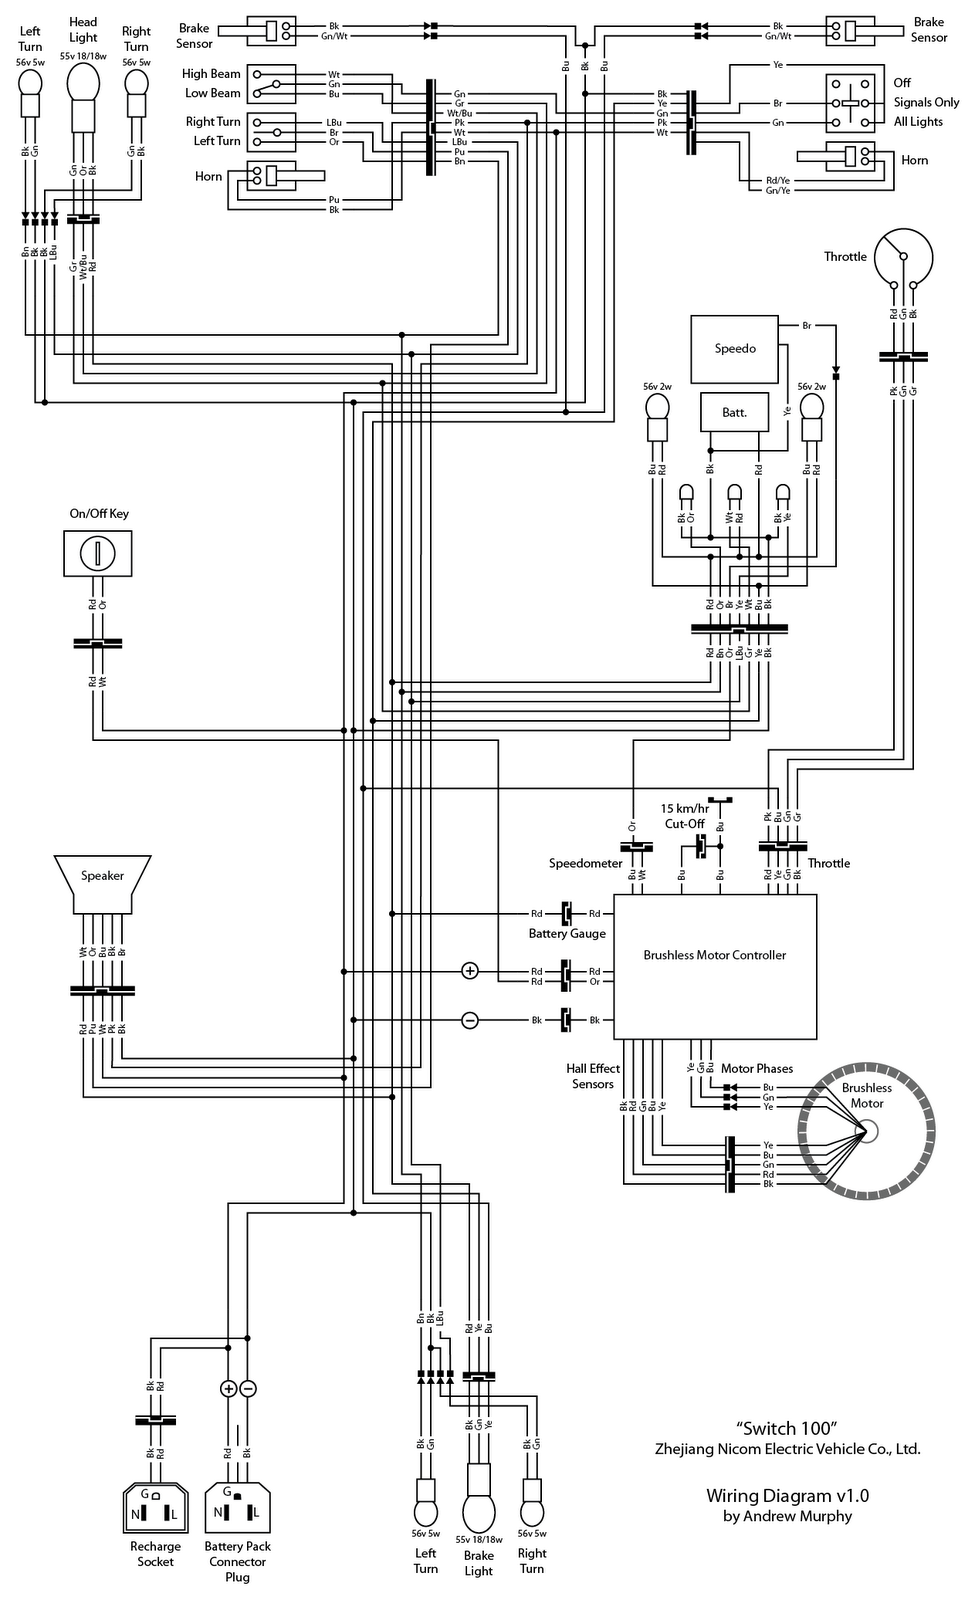 saturn aura xr engine diagram imageresizertool com 1999 Saturn SL2 Radio Wiring Diagram 2001 Saturn SL2 Engine Diagram